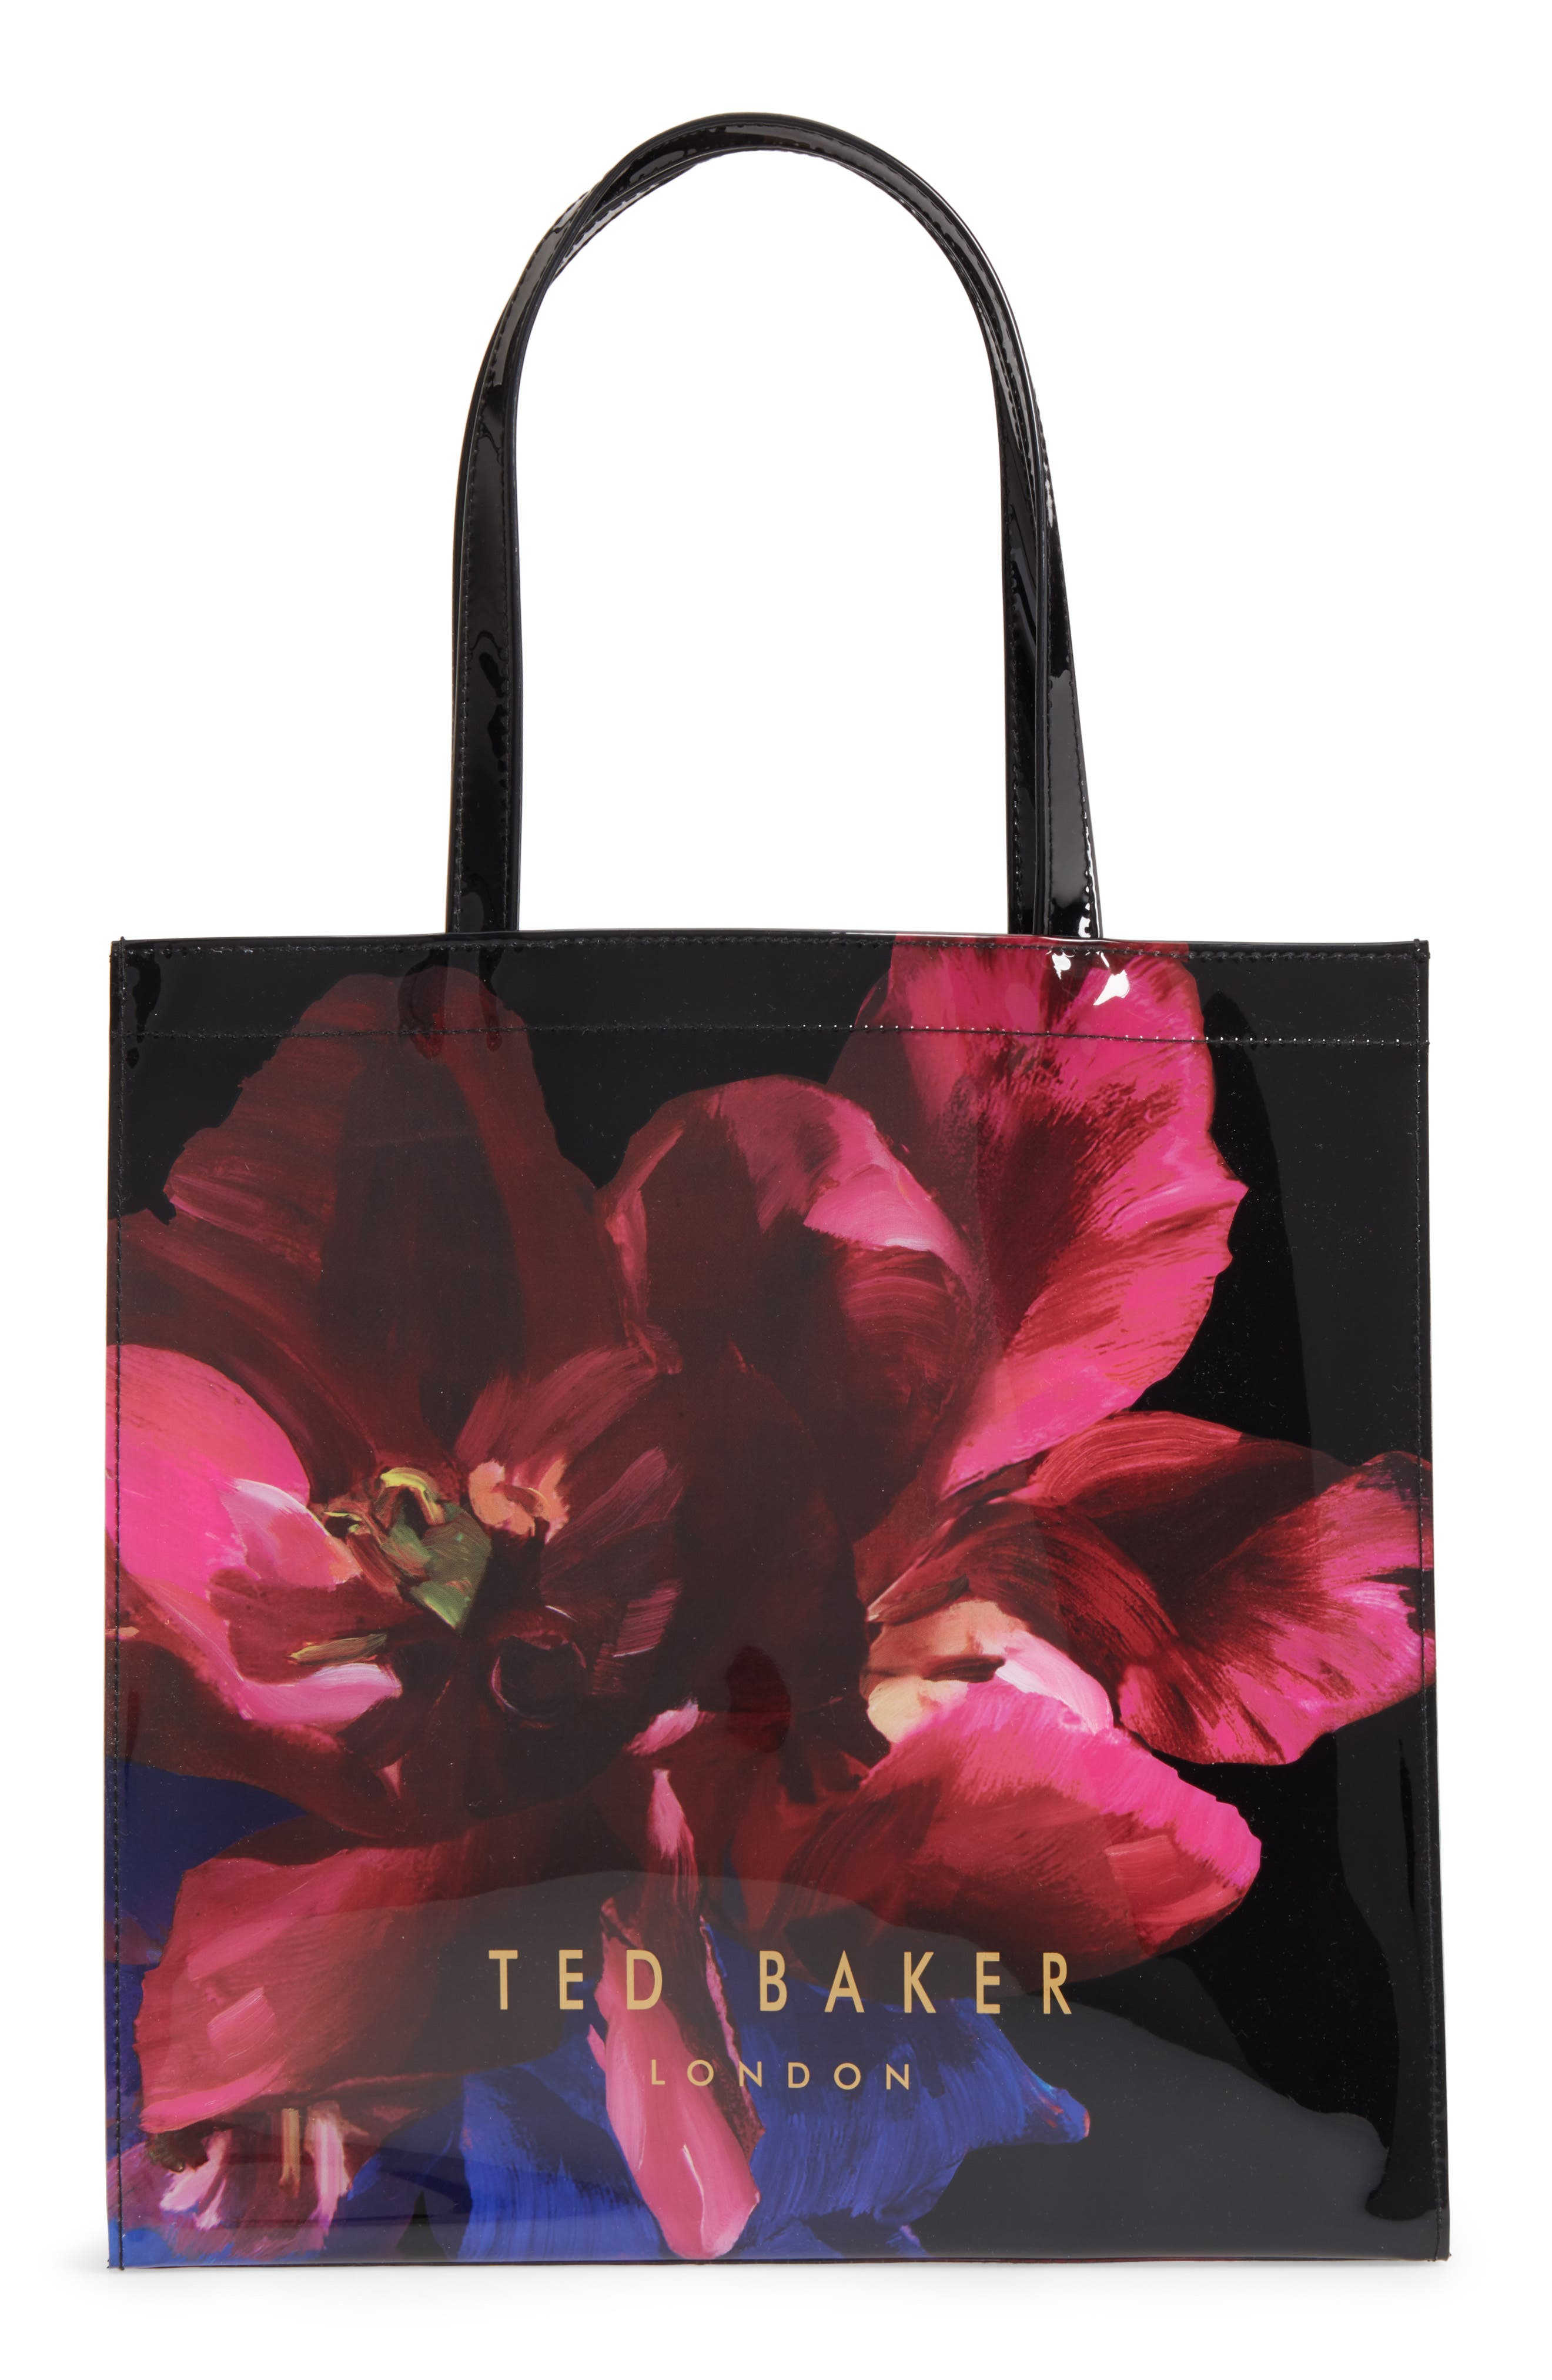 Ted Baker London Large Icon - Impressionist Bloom Tote